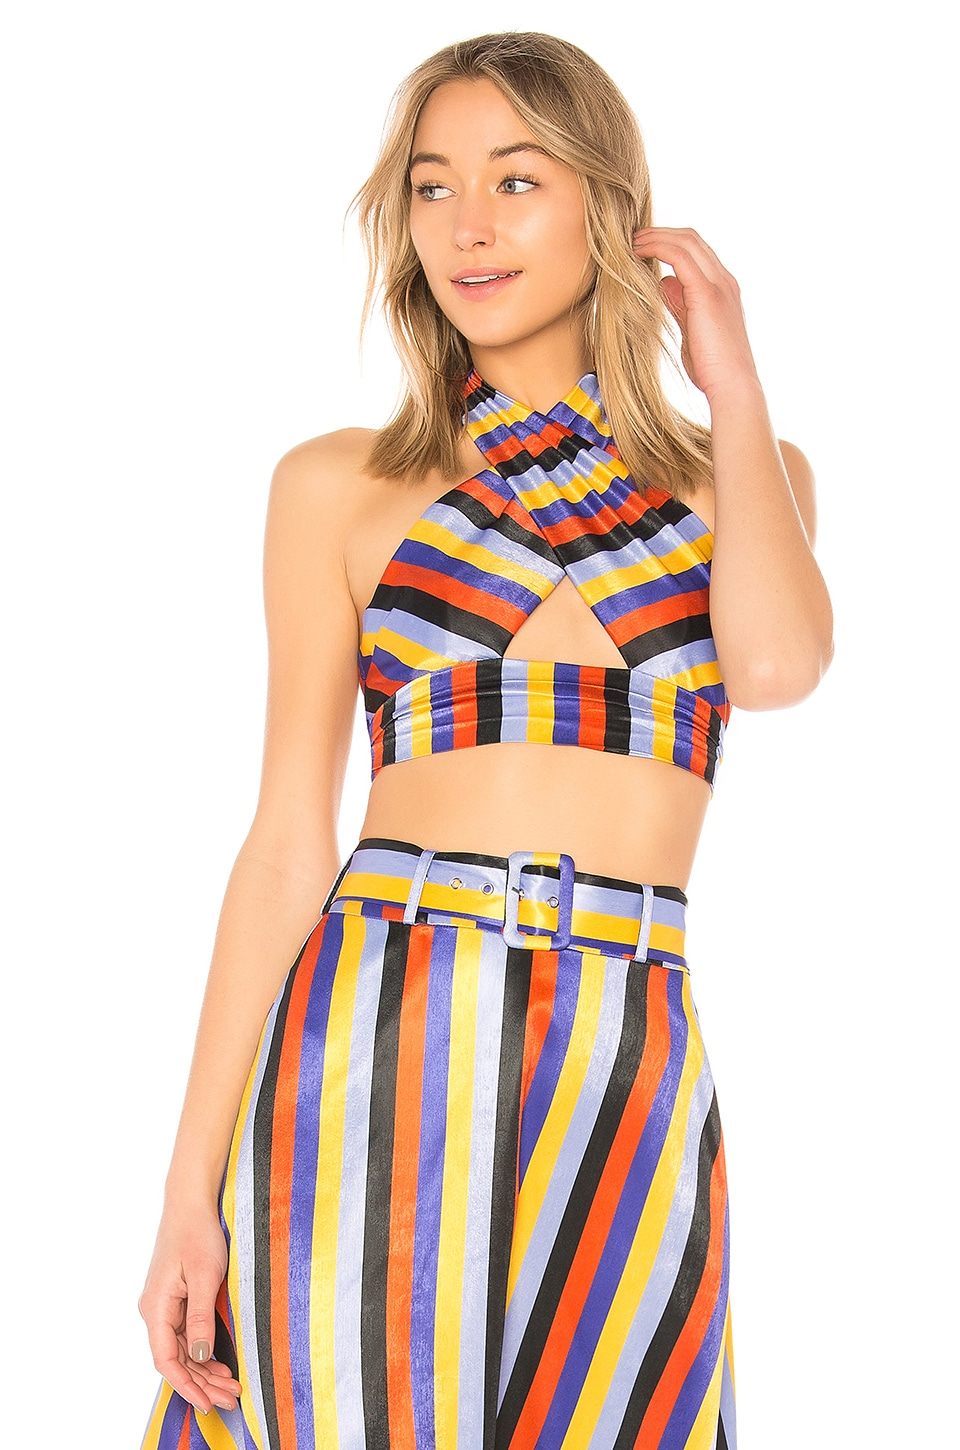 House of Harlow 1960 TOP HALTER JULES